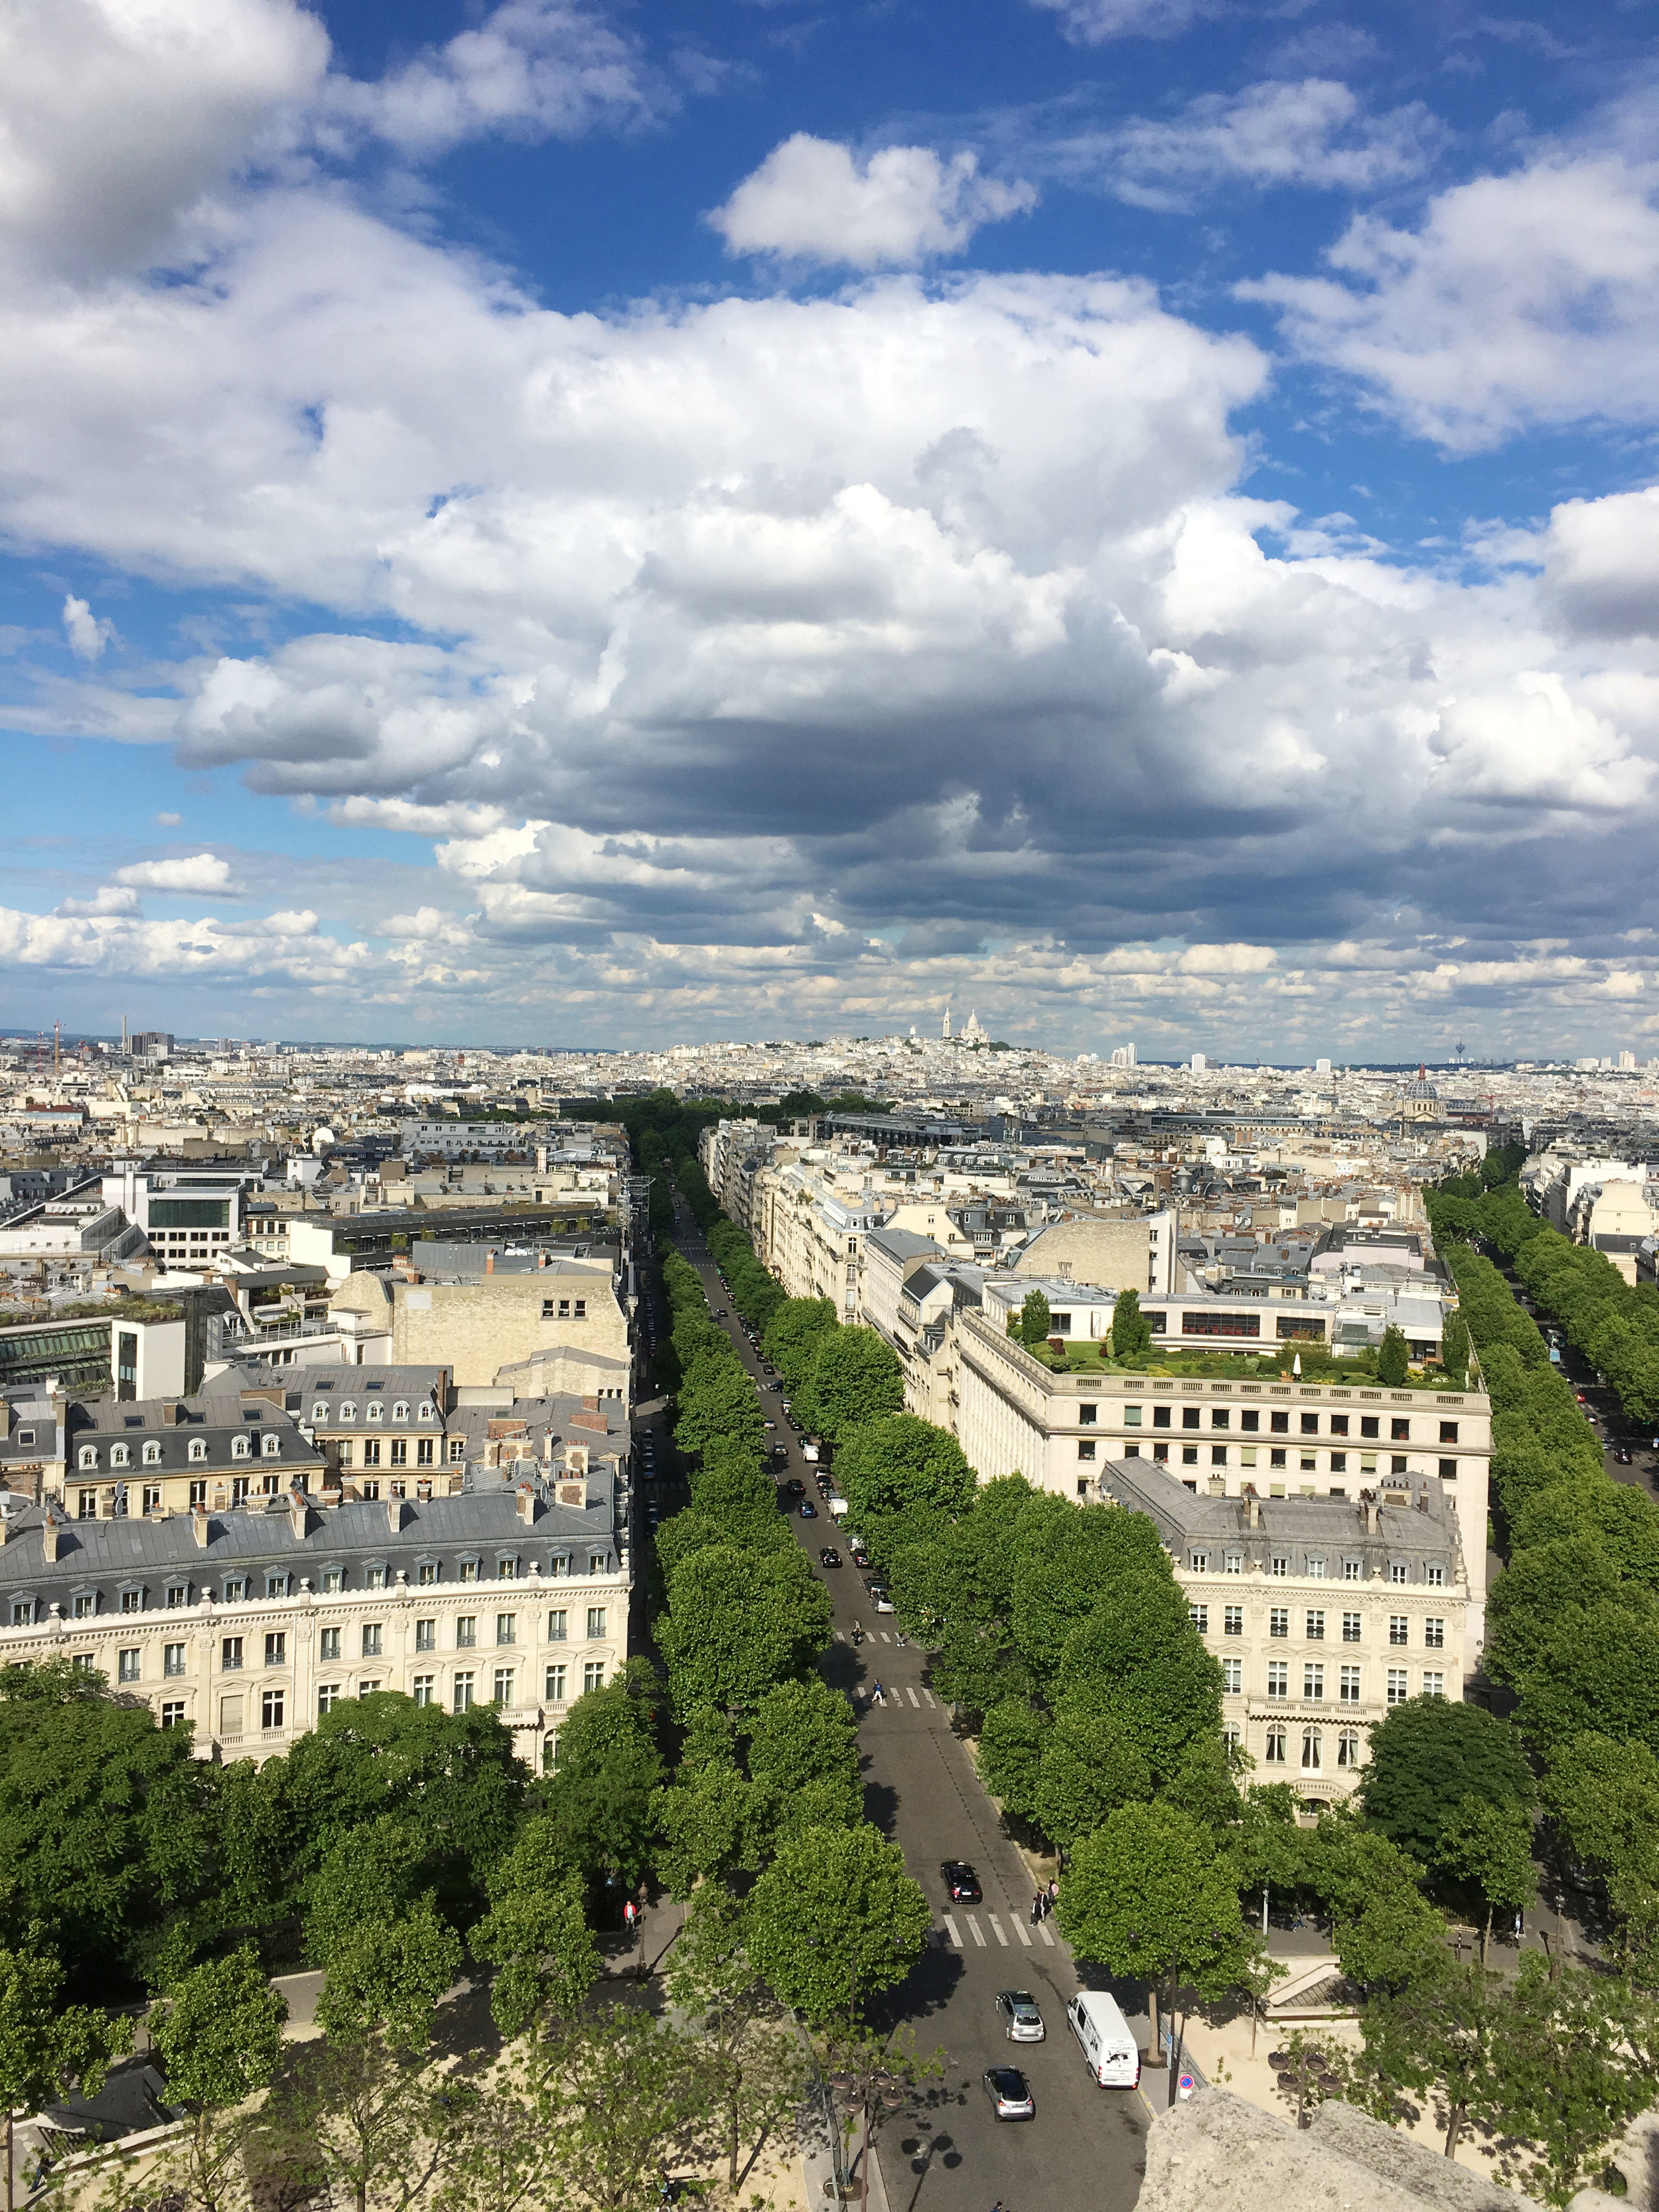 View from the top of the Arc de Triomphe.